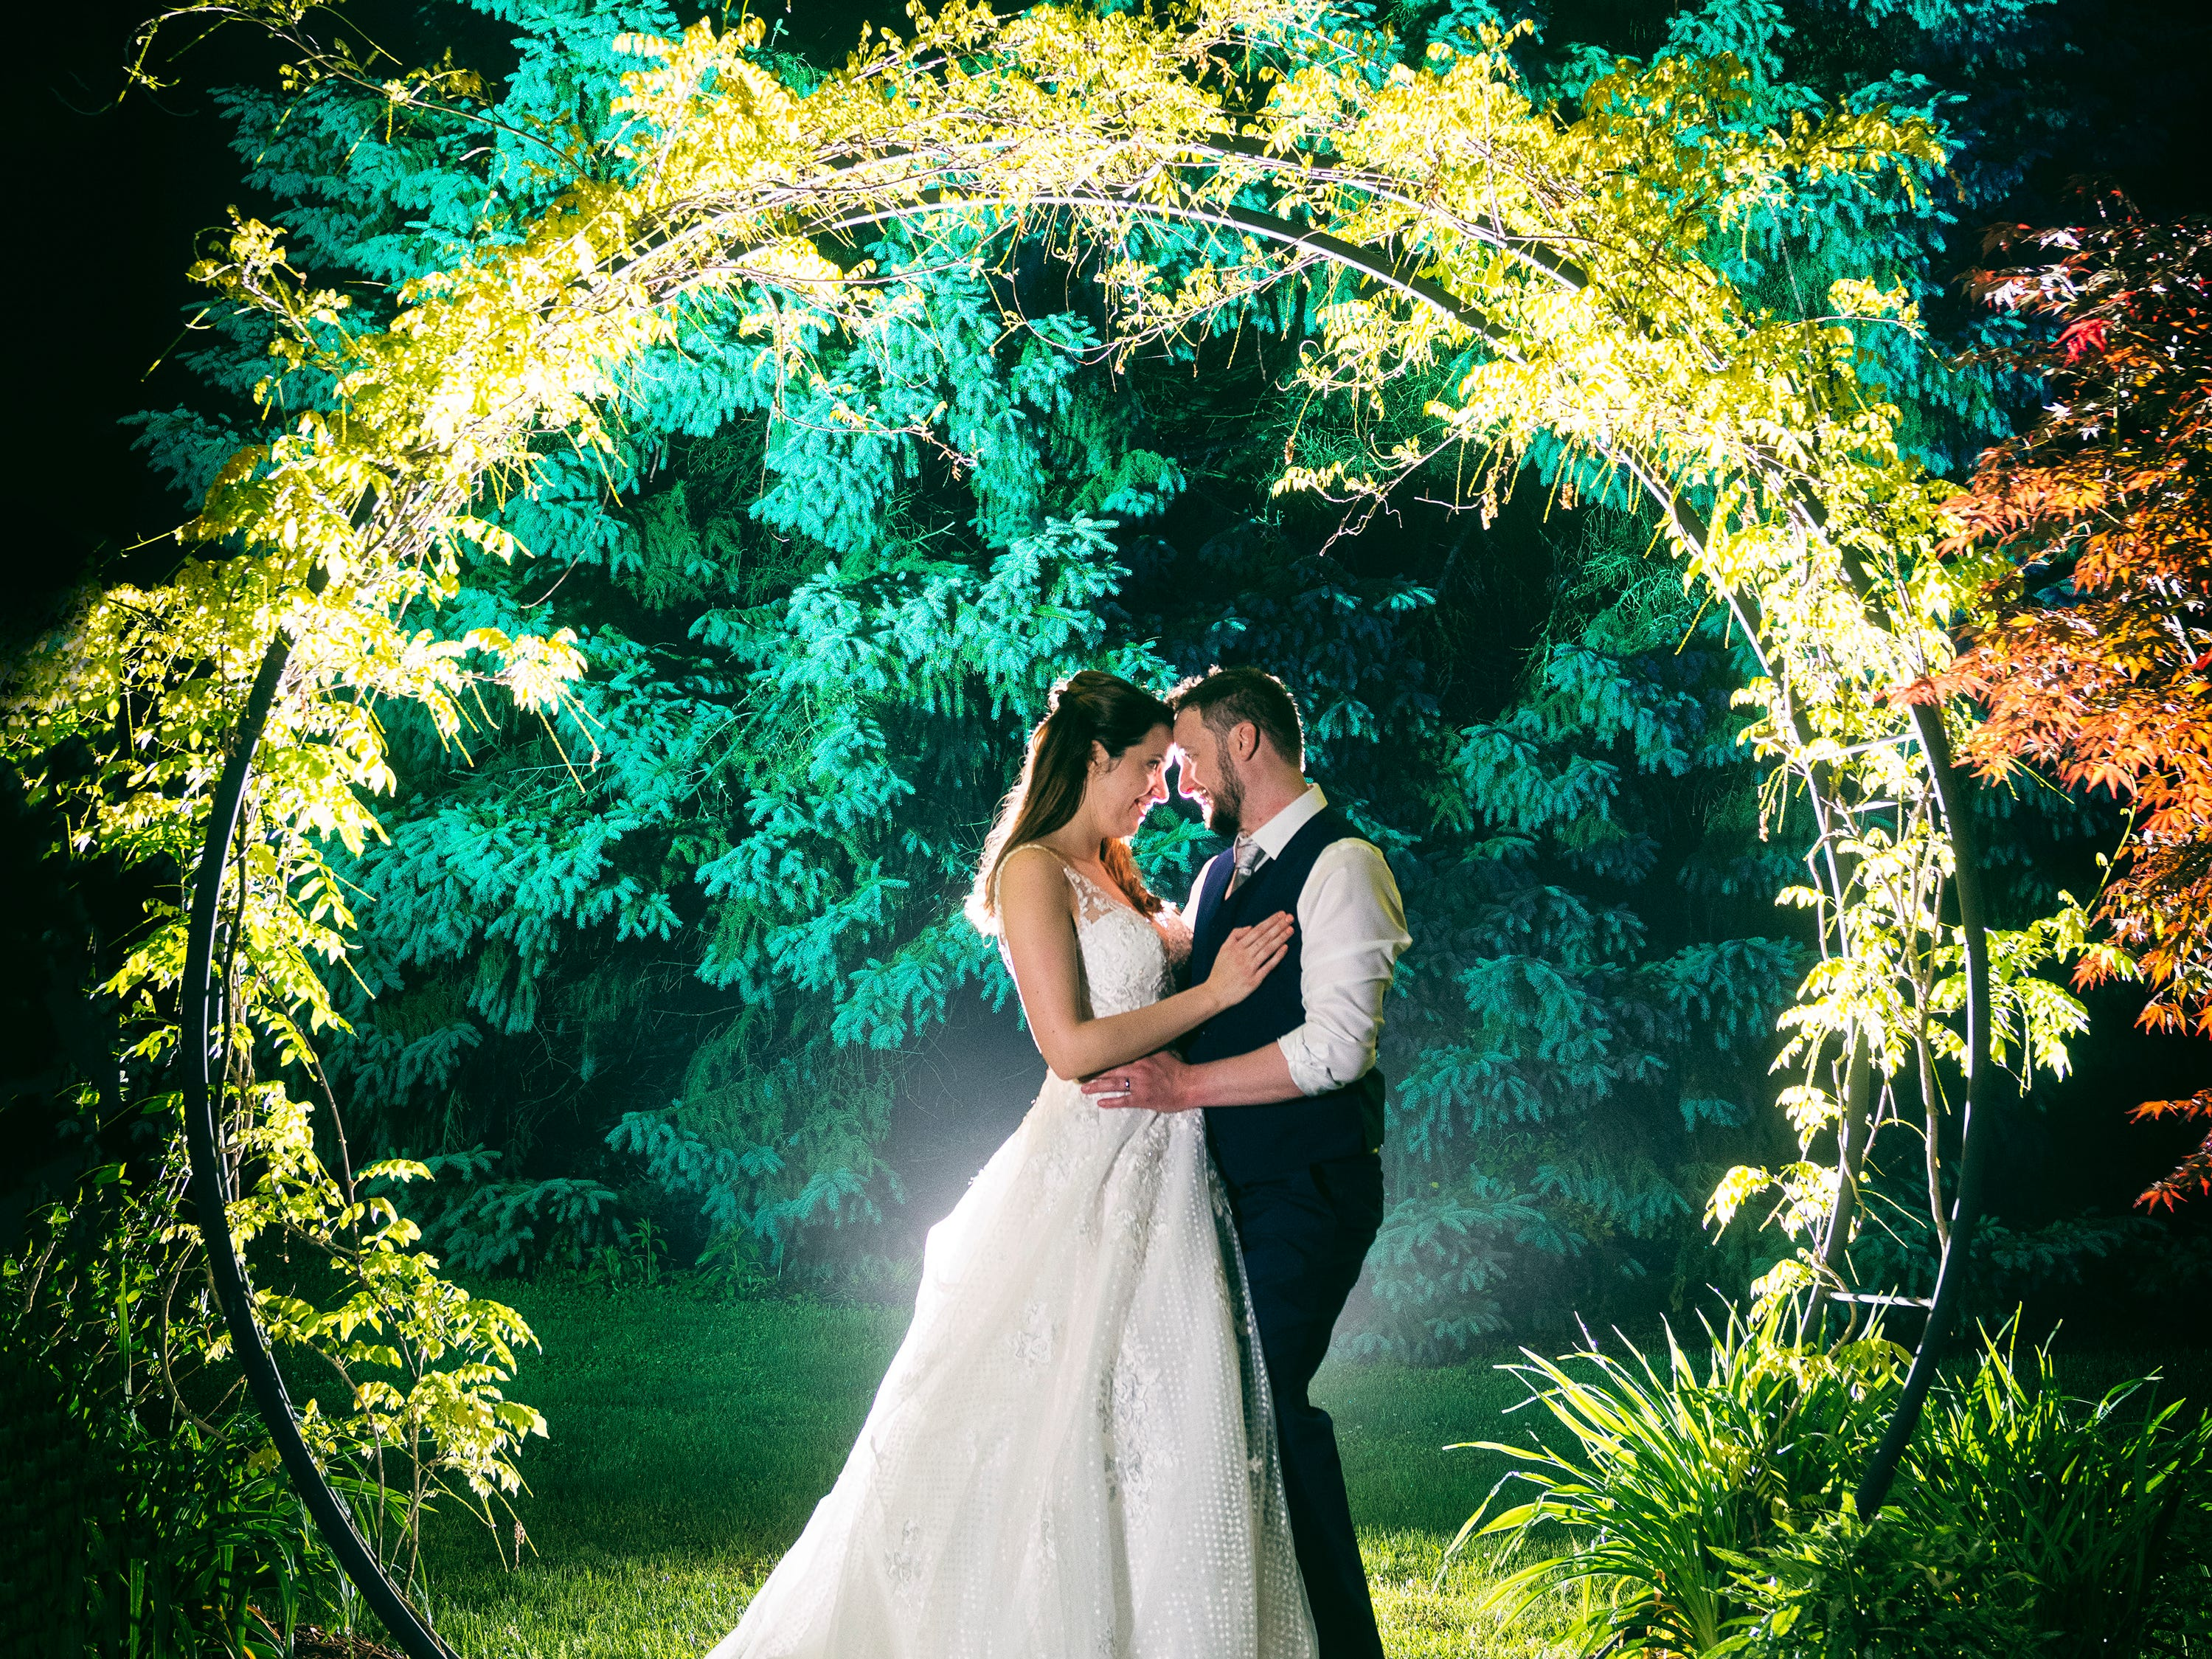 The wedding of Lauren Stoner and Matt Dukenfield at Spring Hill Manor in Cecil County, Maryland.